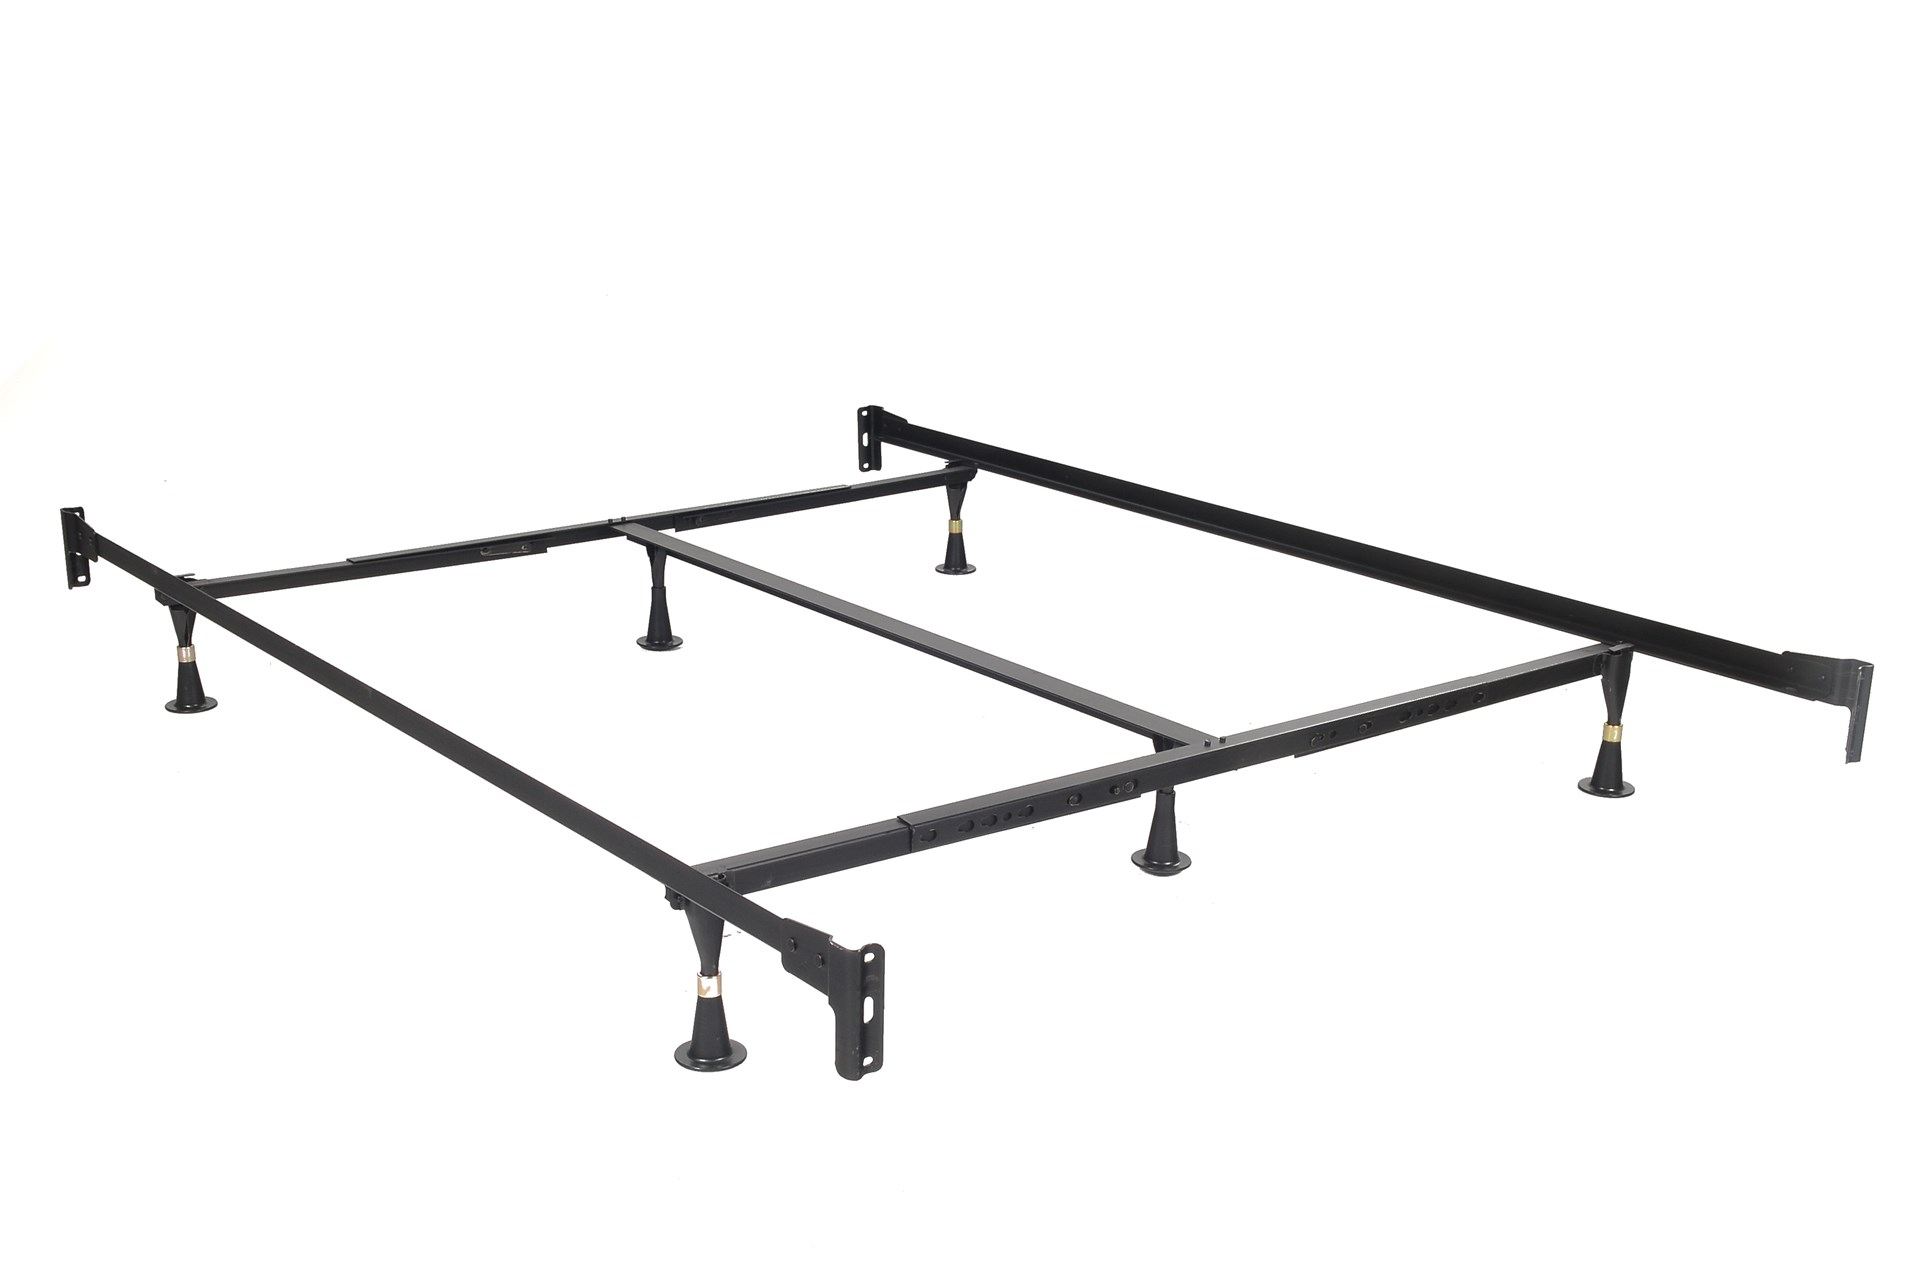 California King Bed Frame Living Spaces - California King Bed Frame